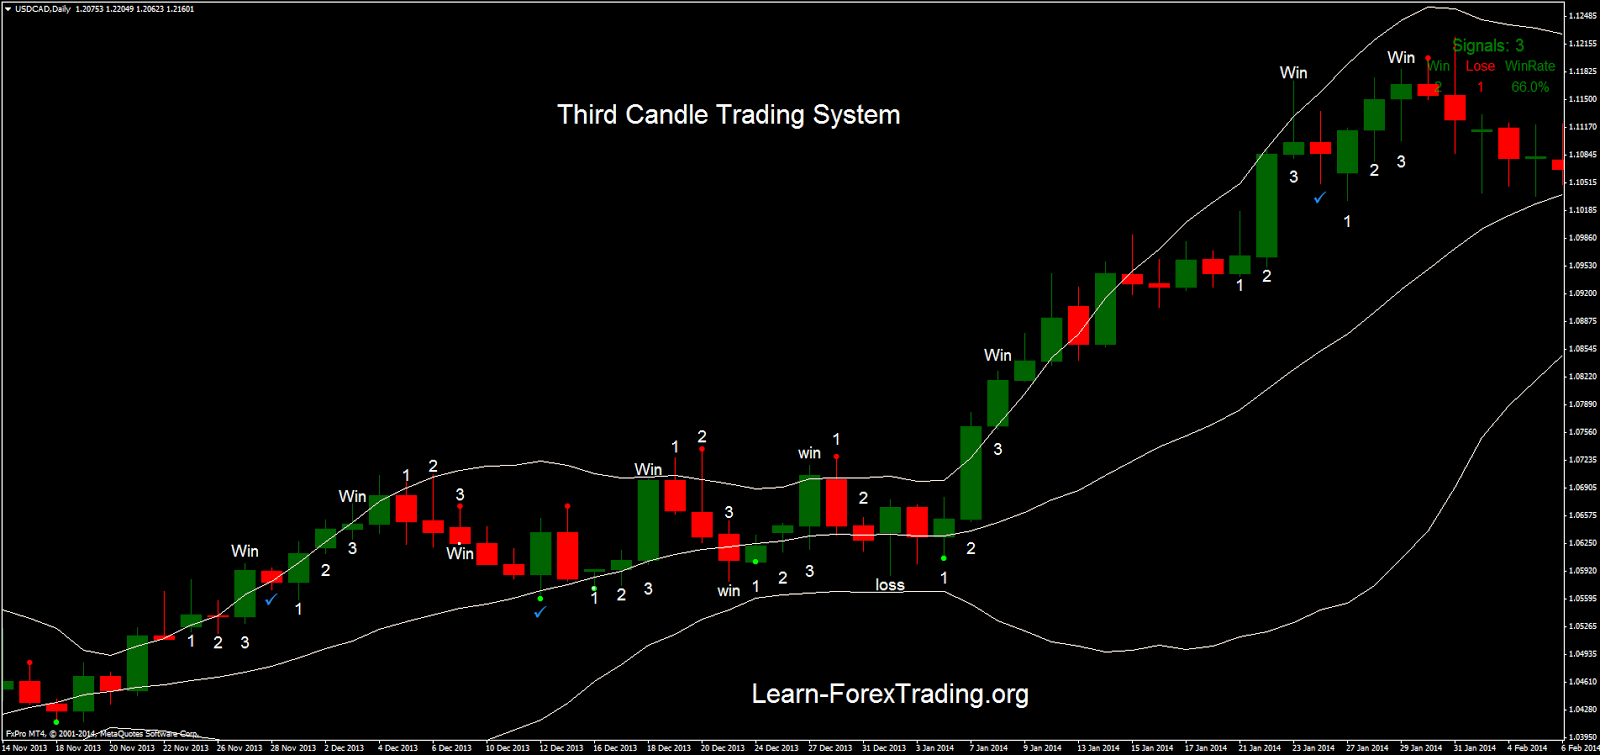 Third Candle Trading System